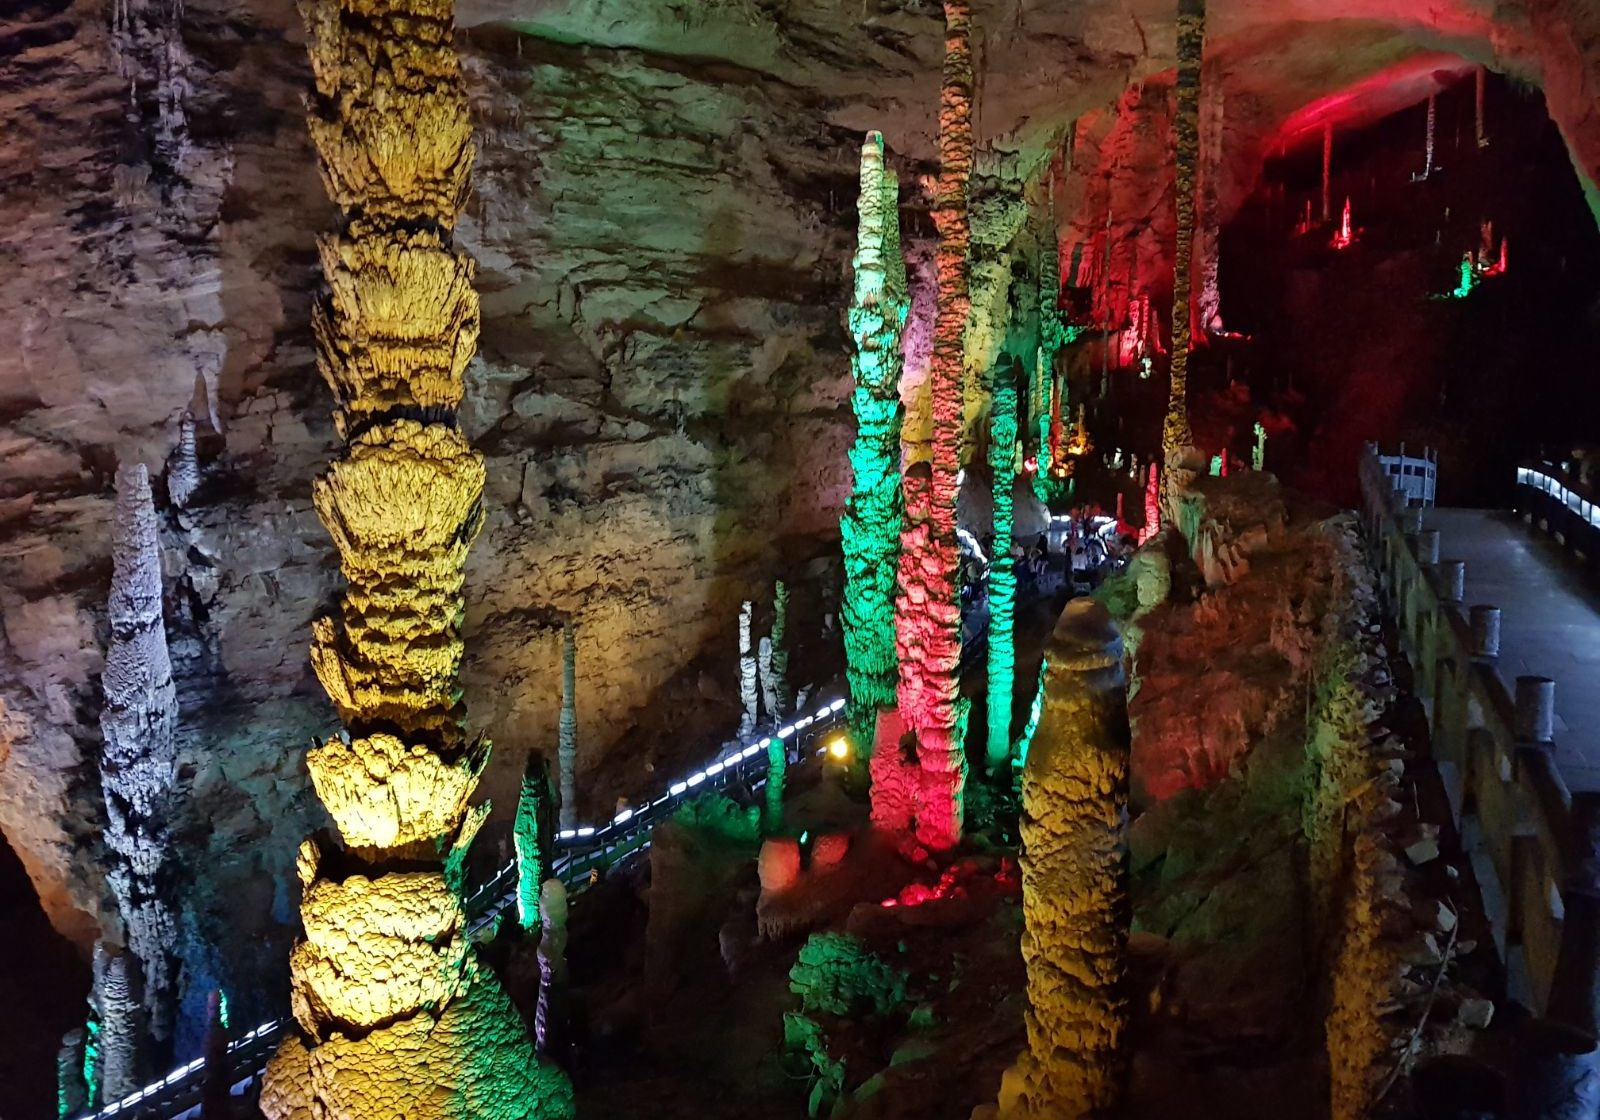 Huanglong Caves at Zhangjiajie are colorfully lit